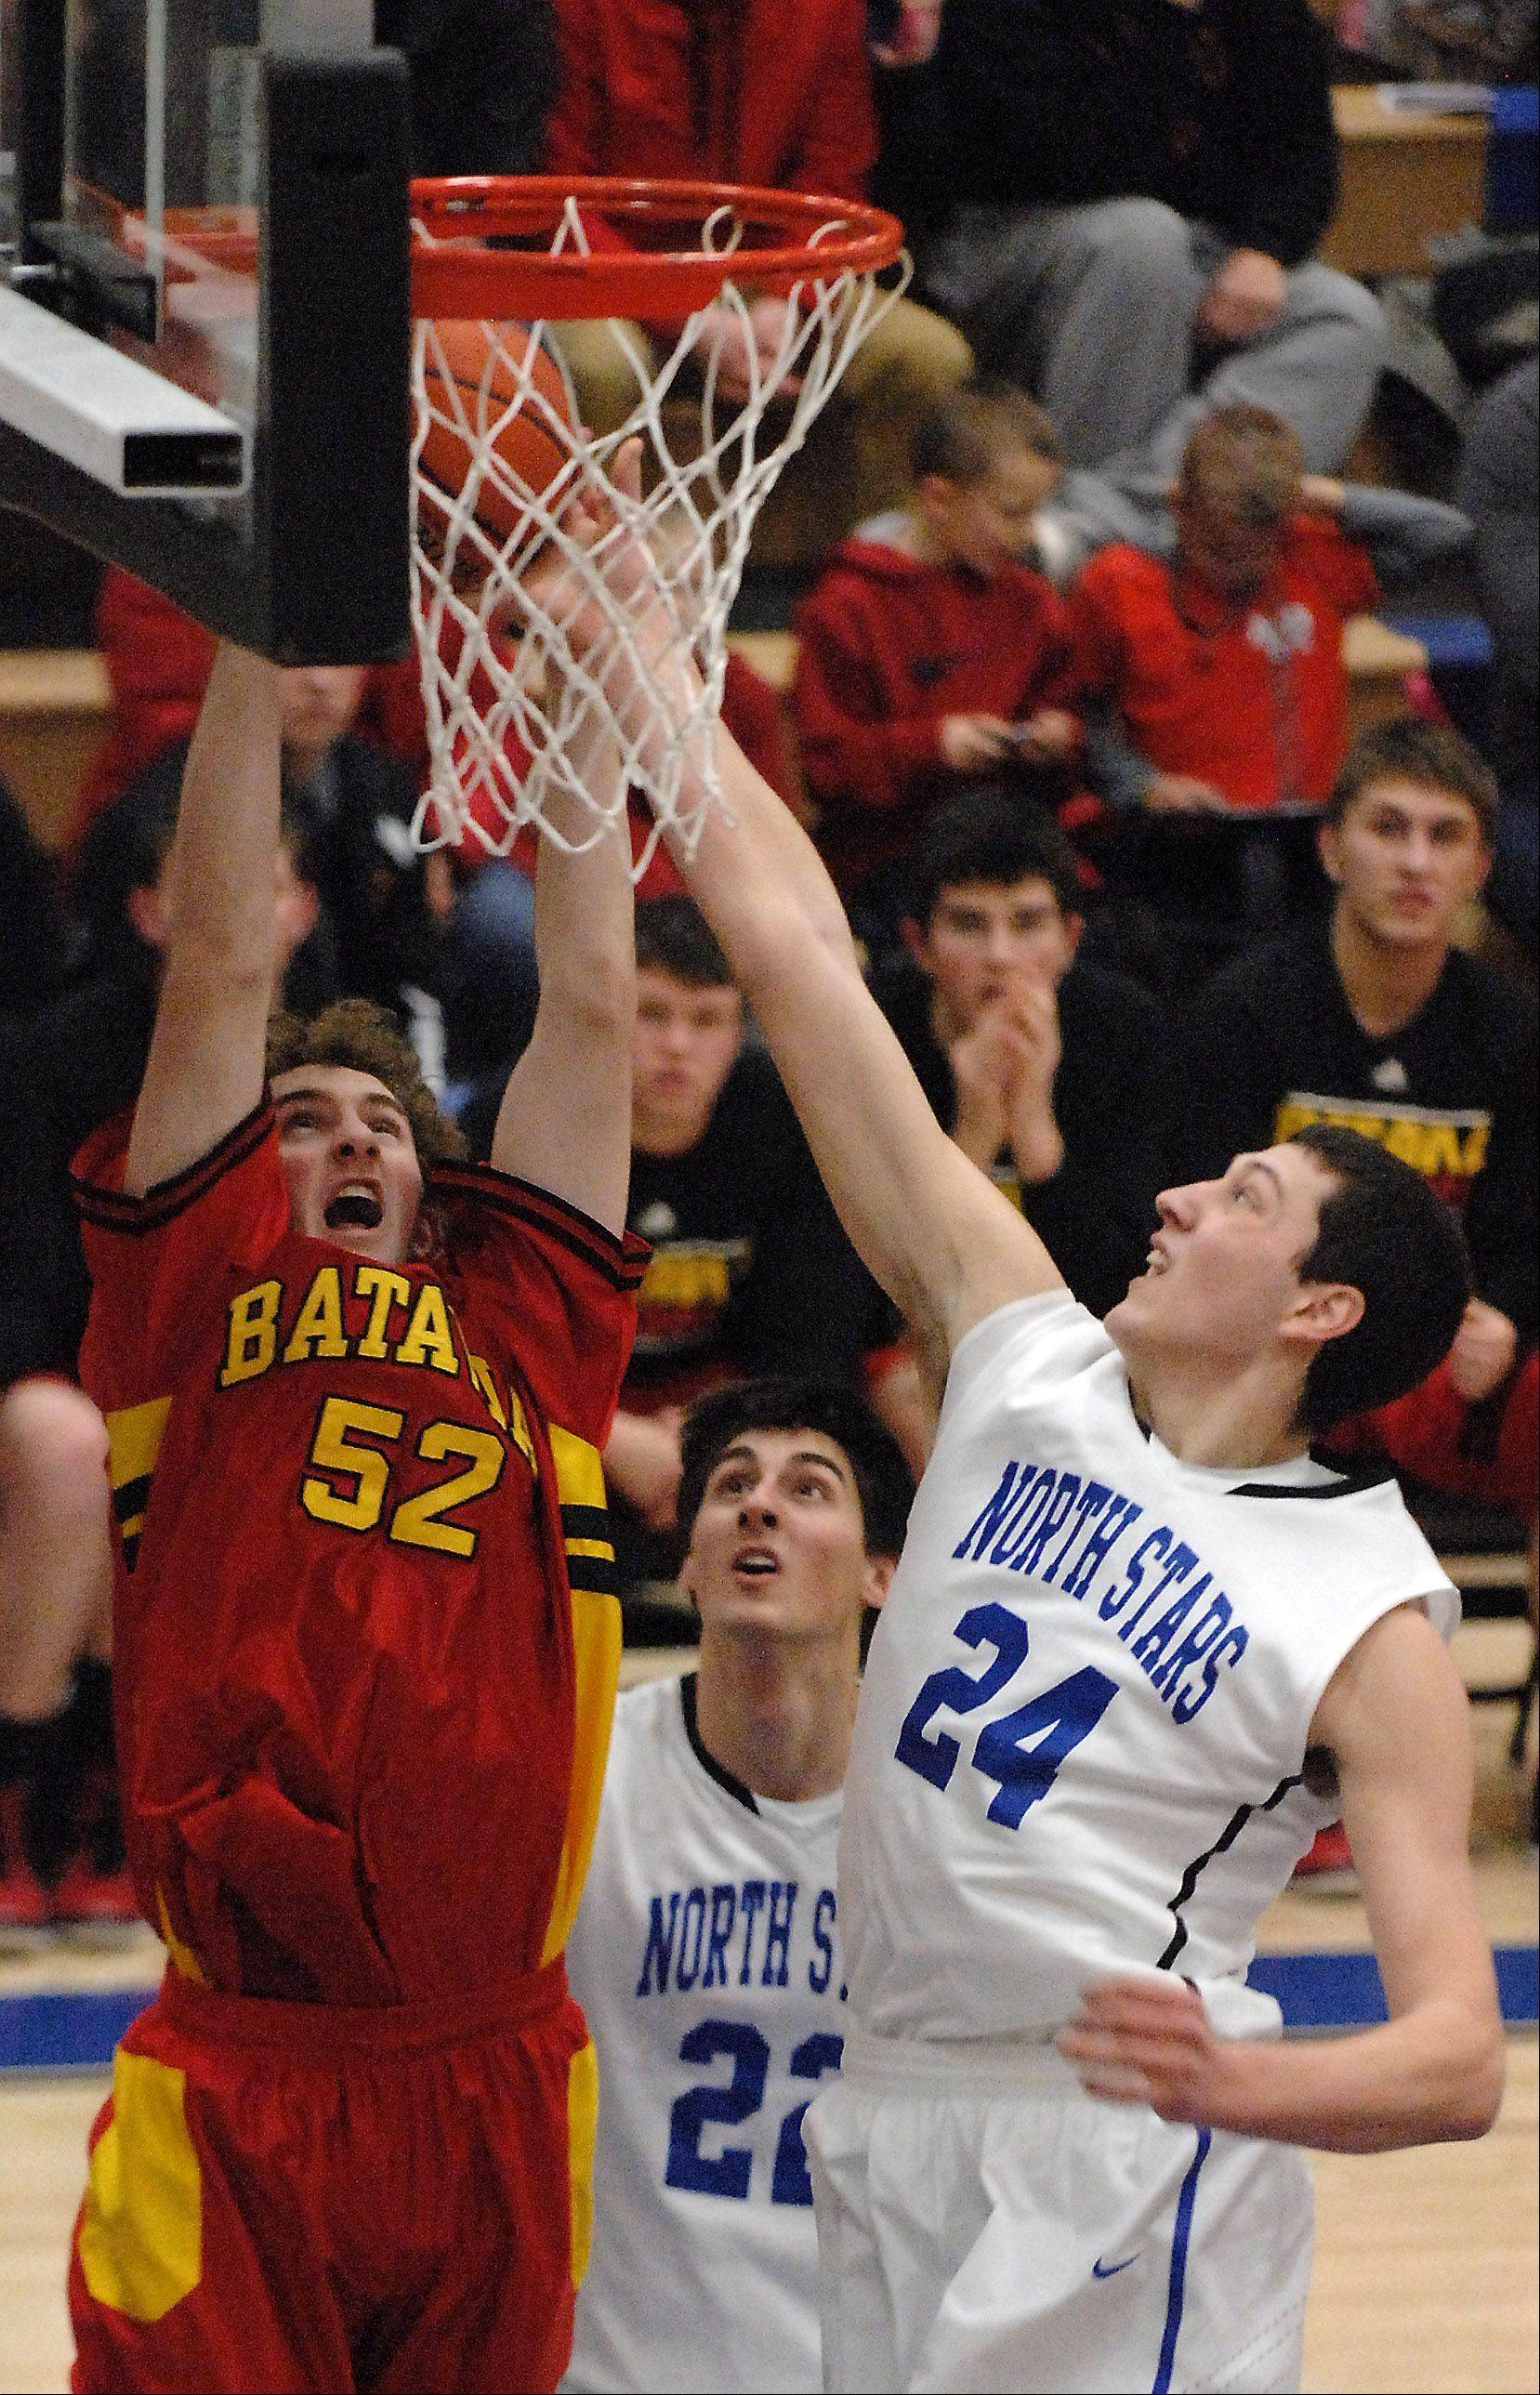 Batavia's Luke Horton and St. Charles North's Chris Preocanin battle for a rebound during Friday's game at St. Charles.